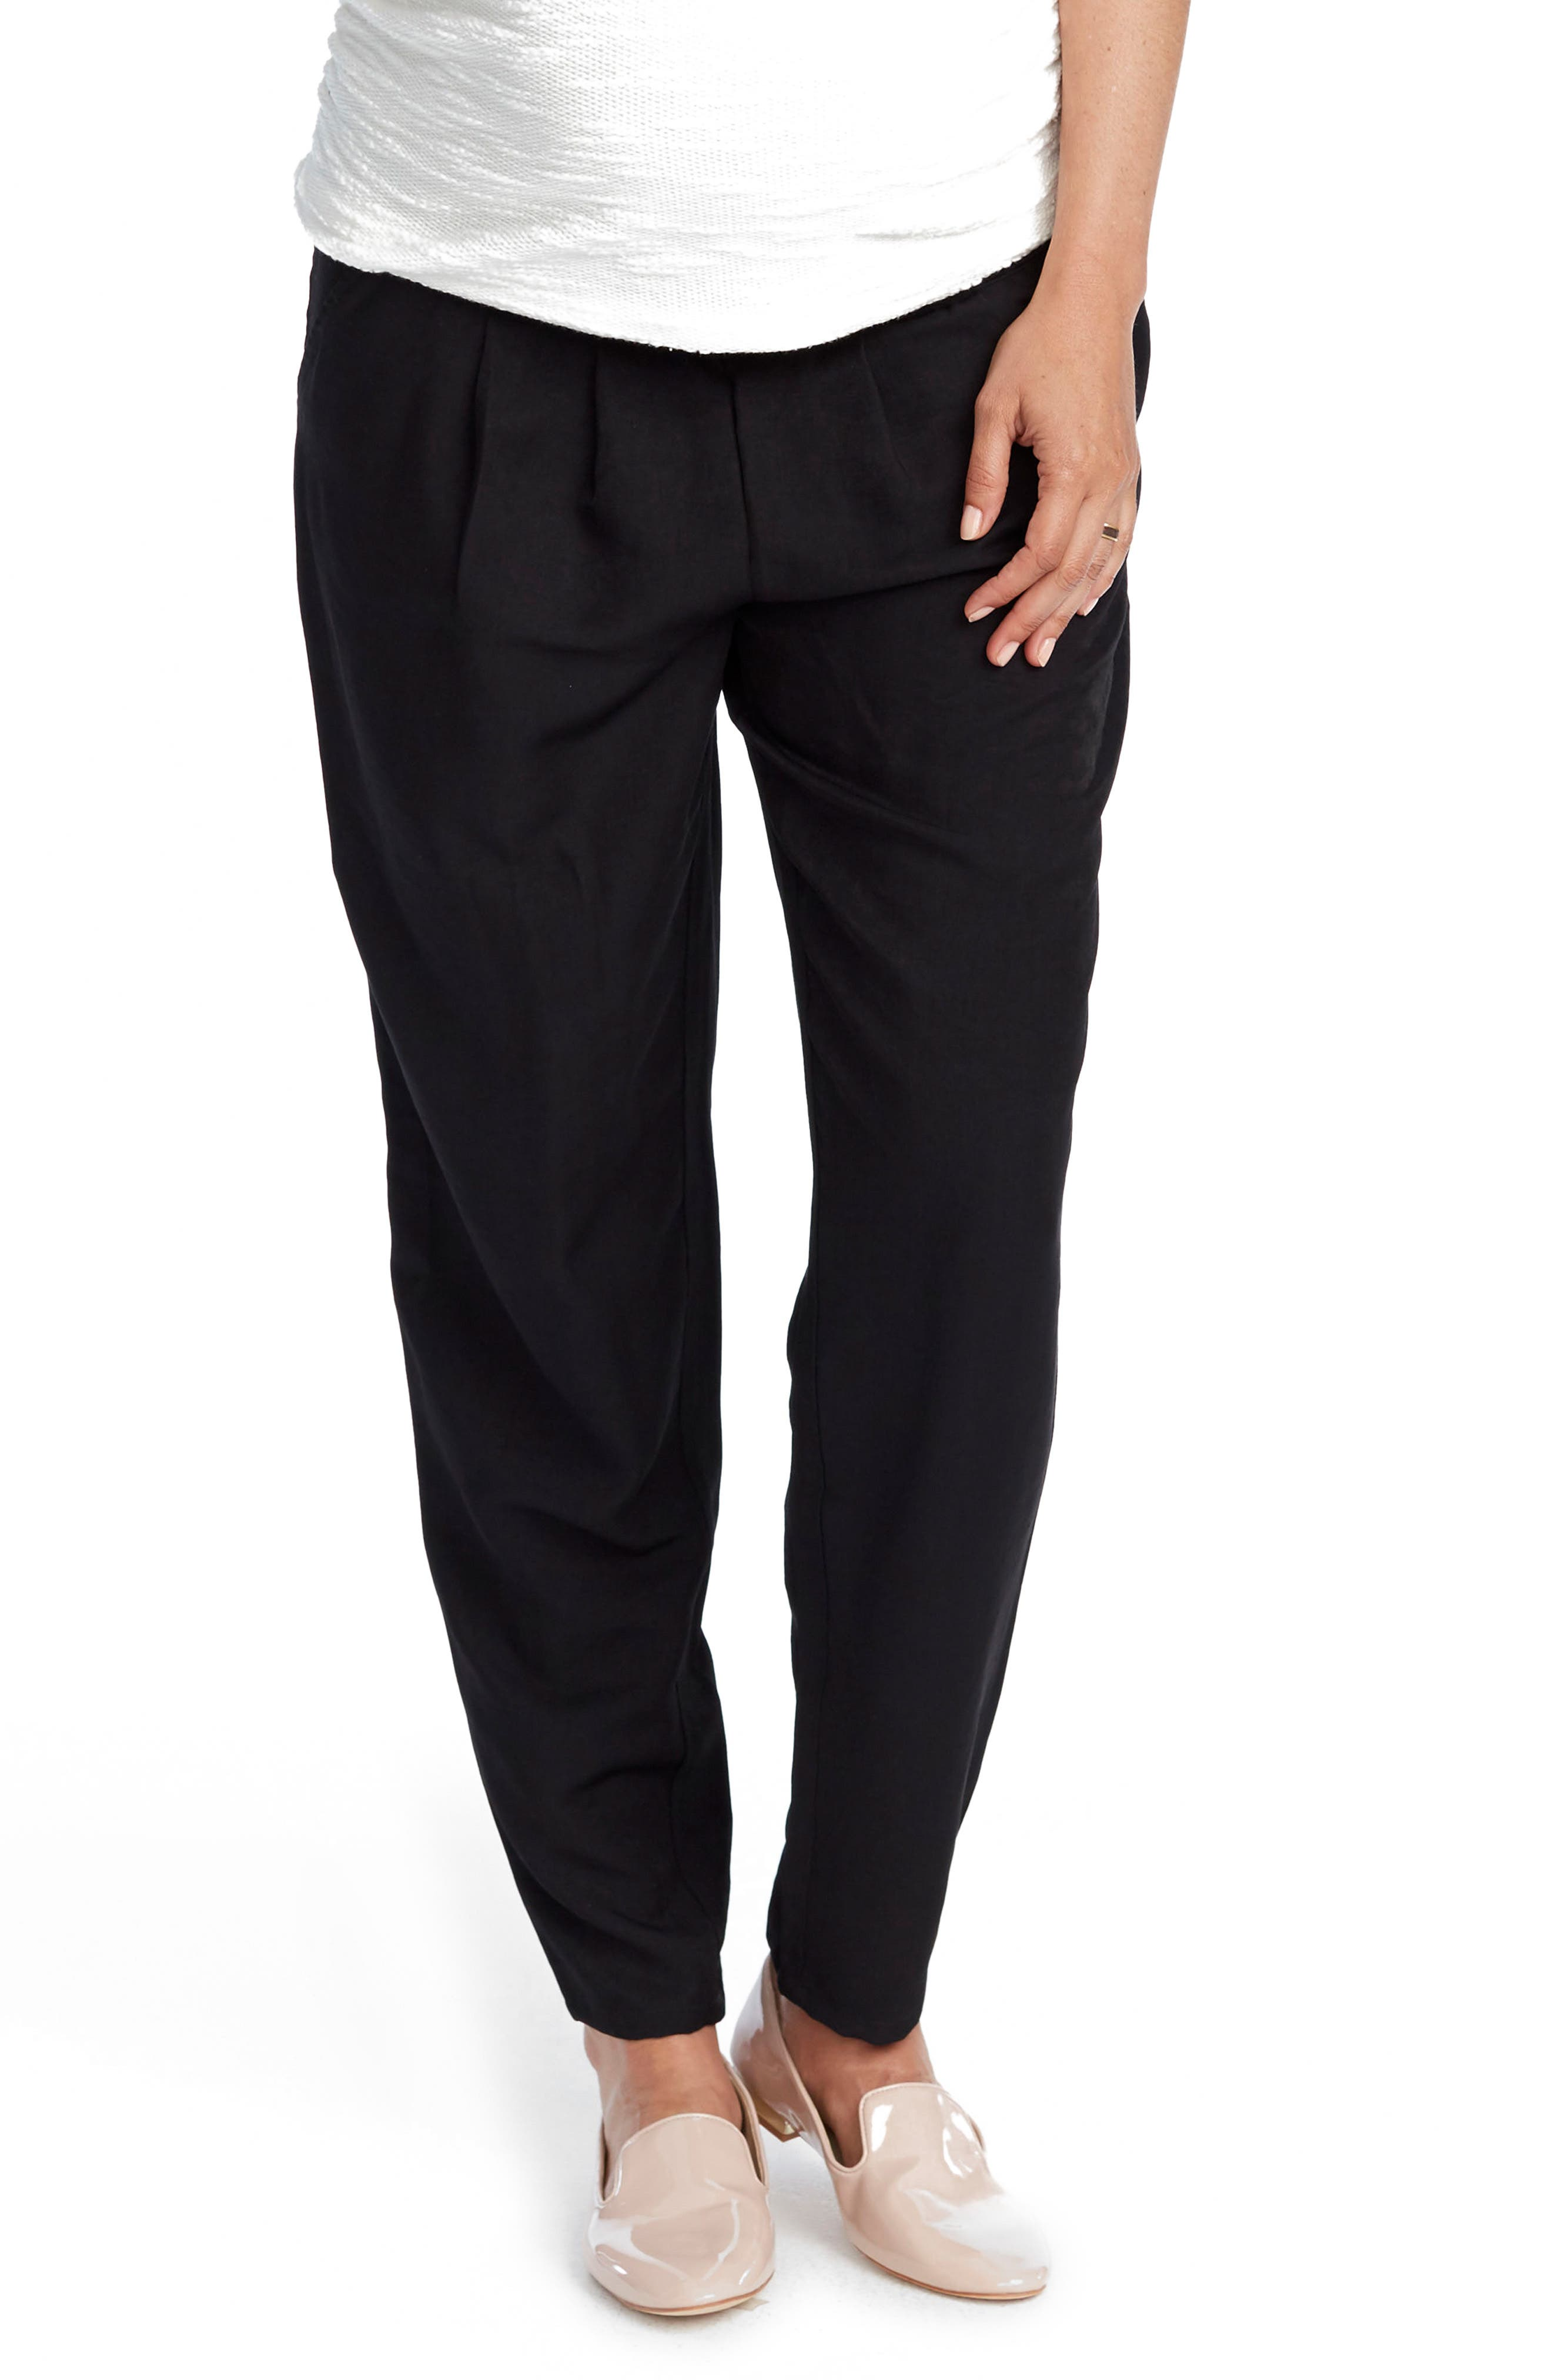 Rosie Pope Willow Maternity Pants